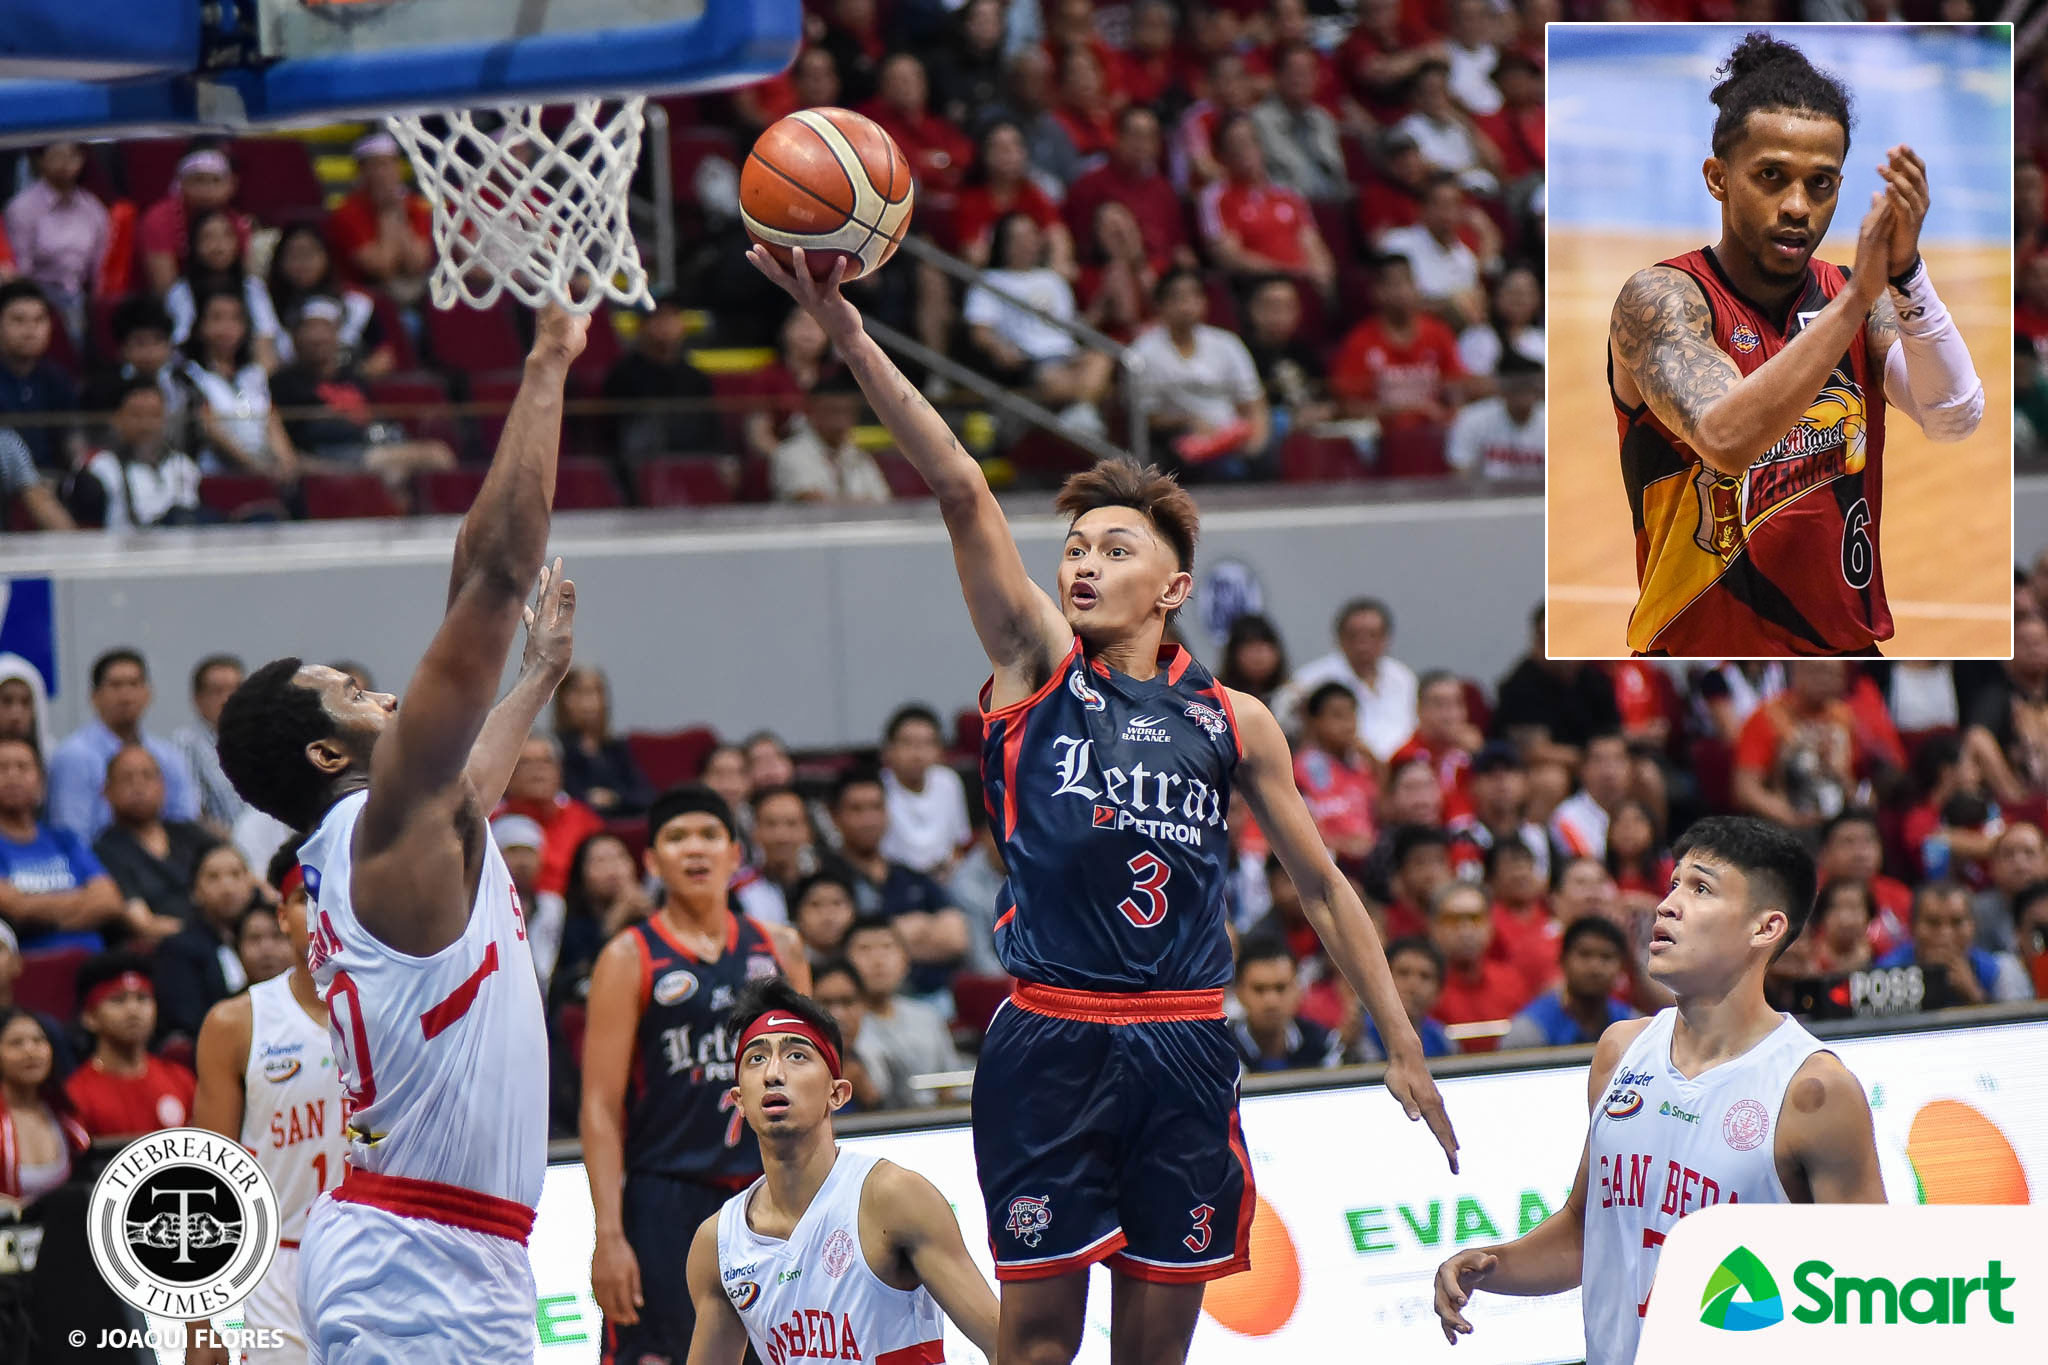 Tiebreaker Times 'Idol' Chris Ross reaches out to Fran Yu Basketball CSJL NCAA News PBA  NCAA Season 95 Seniors Basketball NCAA Season 95 Letran Seniors Basketball Fran Yu Chris Ross